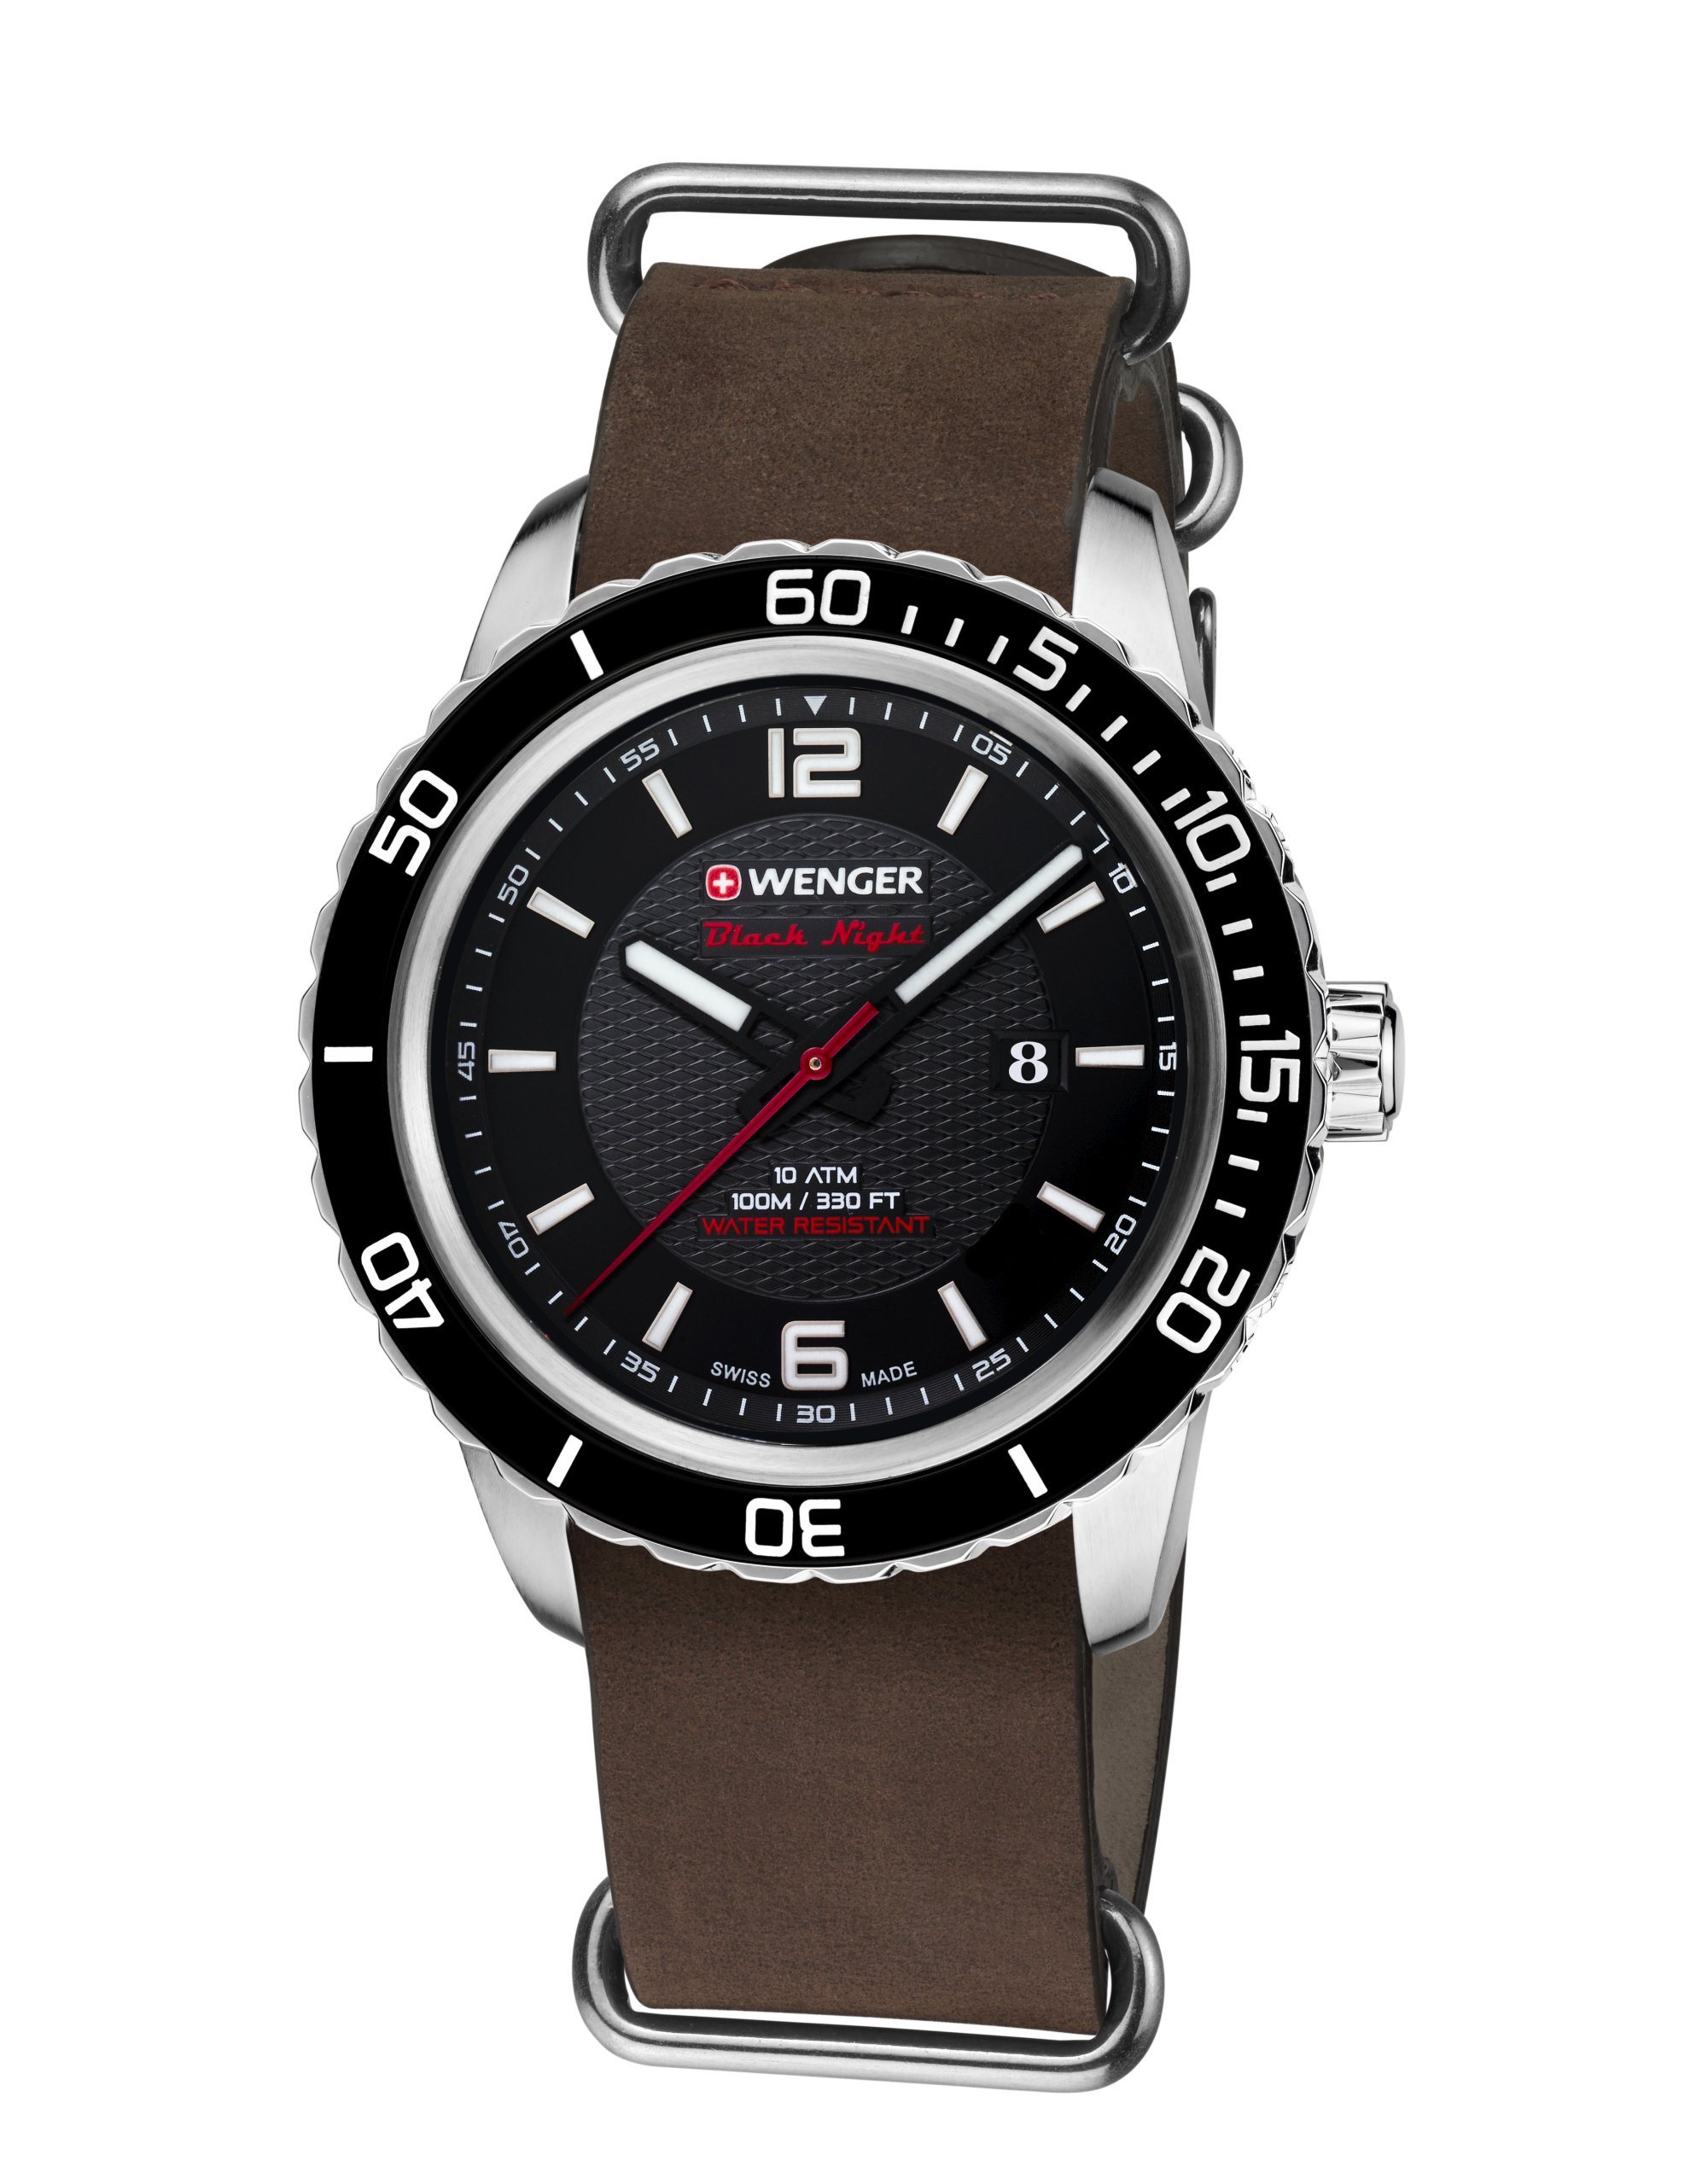 Wenger Unisex Analogue Quartz Watch with Leather Strap 01.0851.121